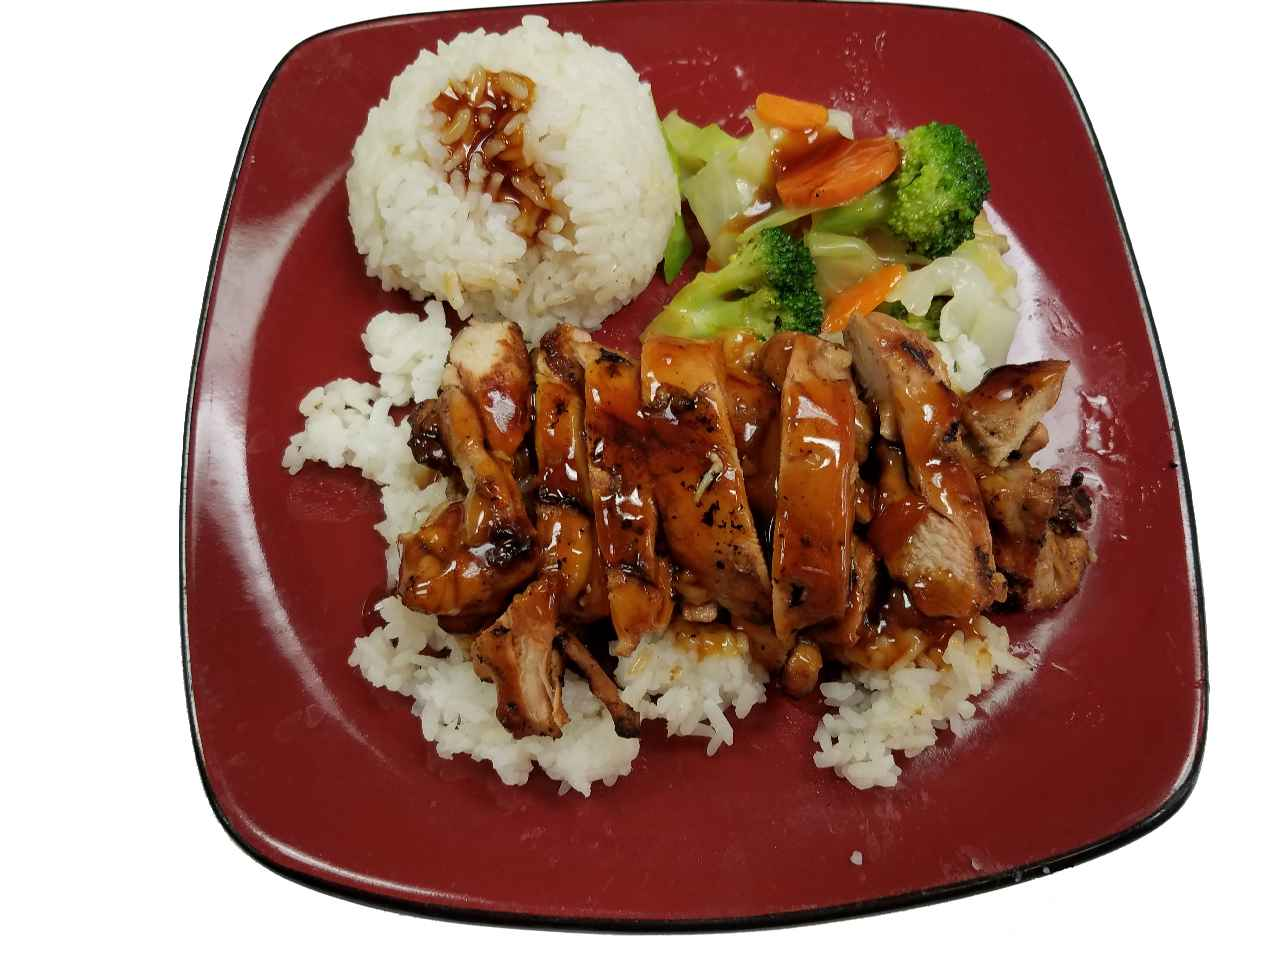 41-Kids-Meal-Chicken-Teriyaki-3